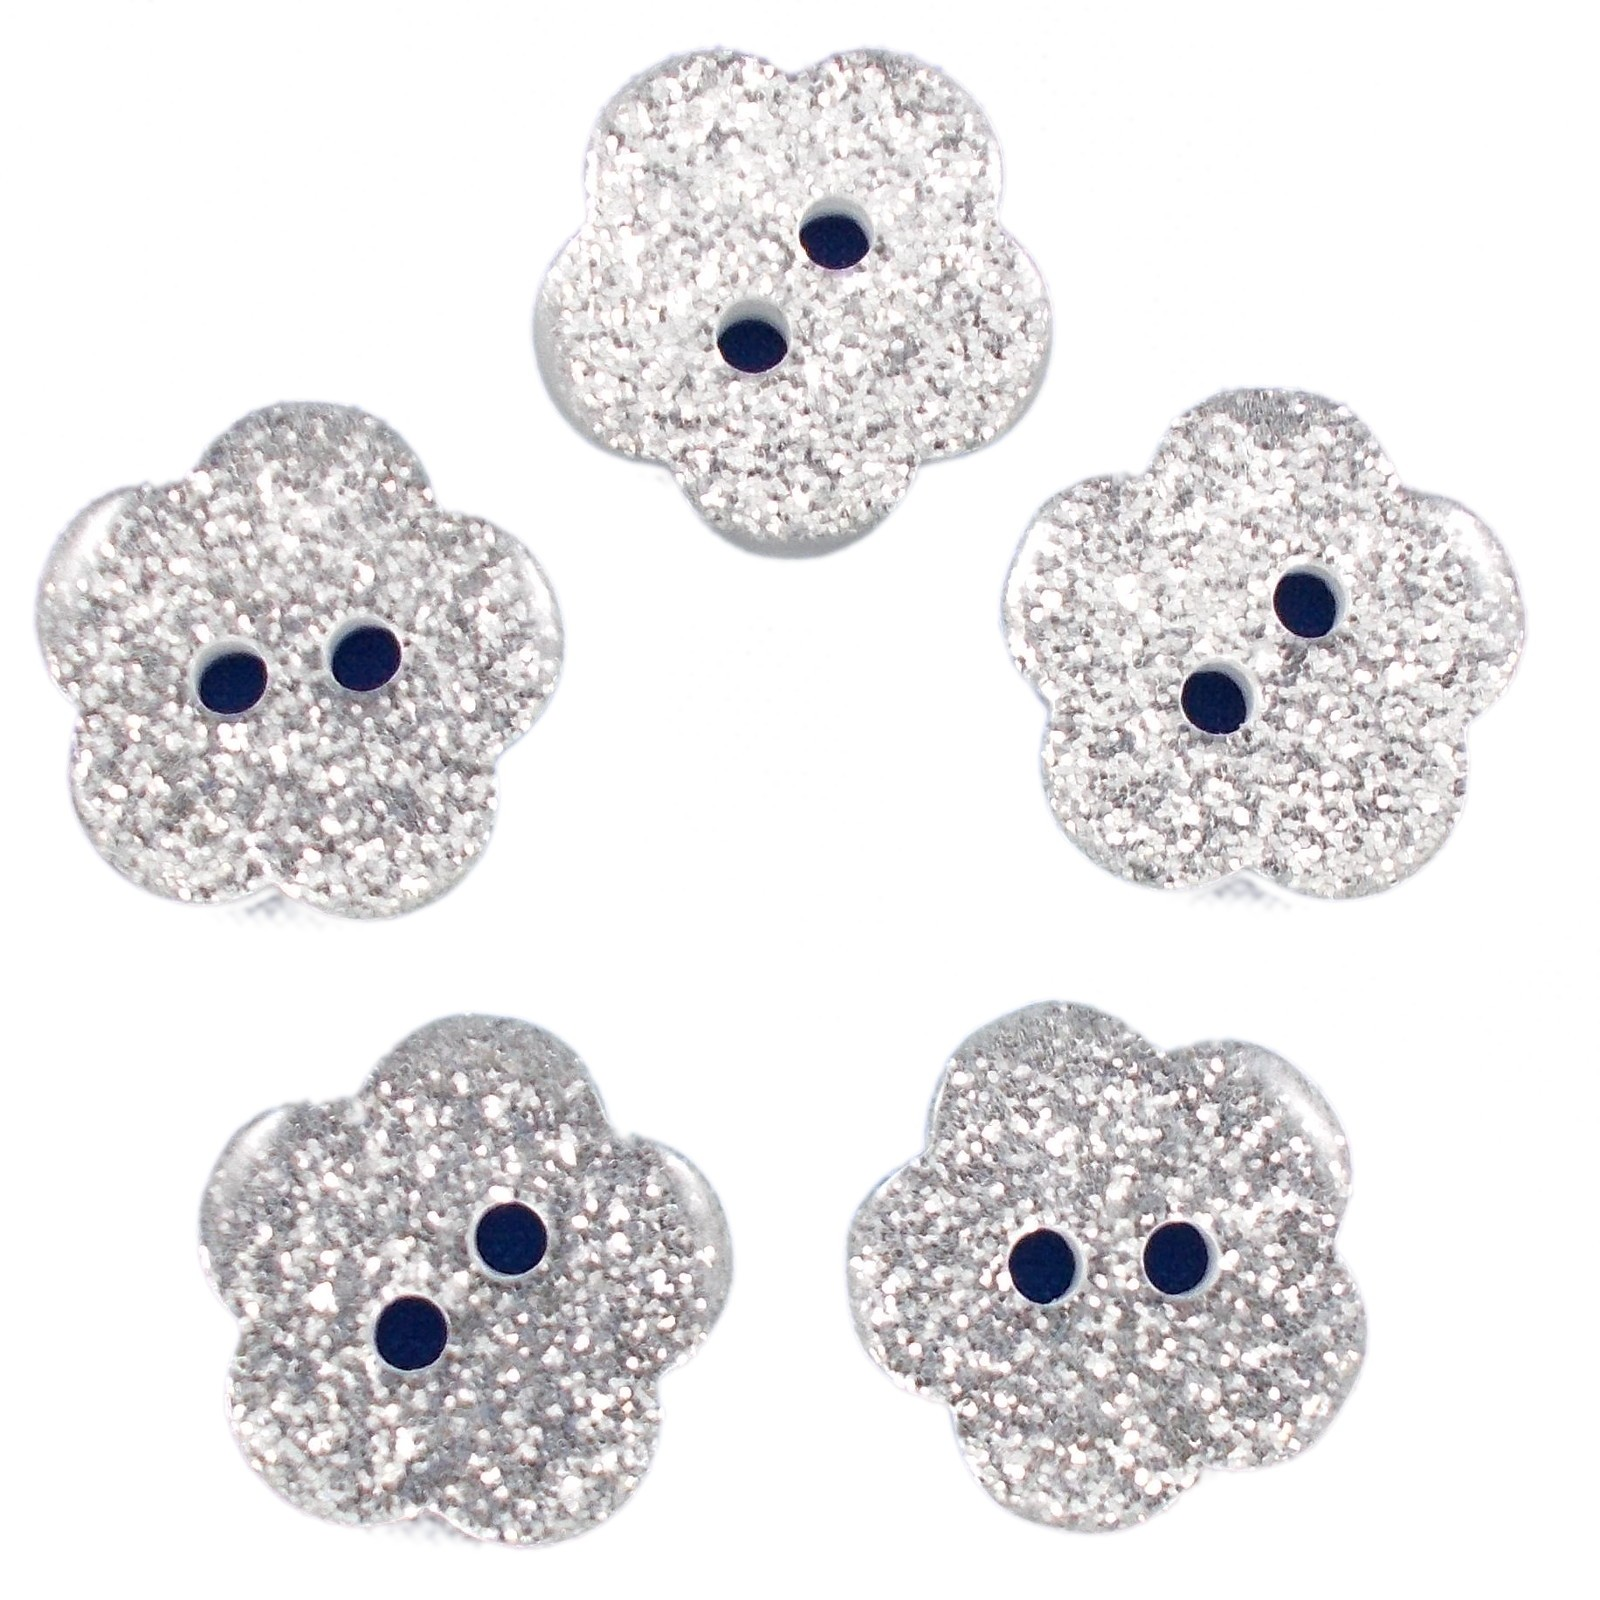 Colour Glitter Flower Shape Buttons 16mm Silver Pack of 5